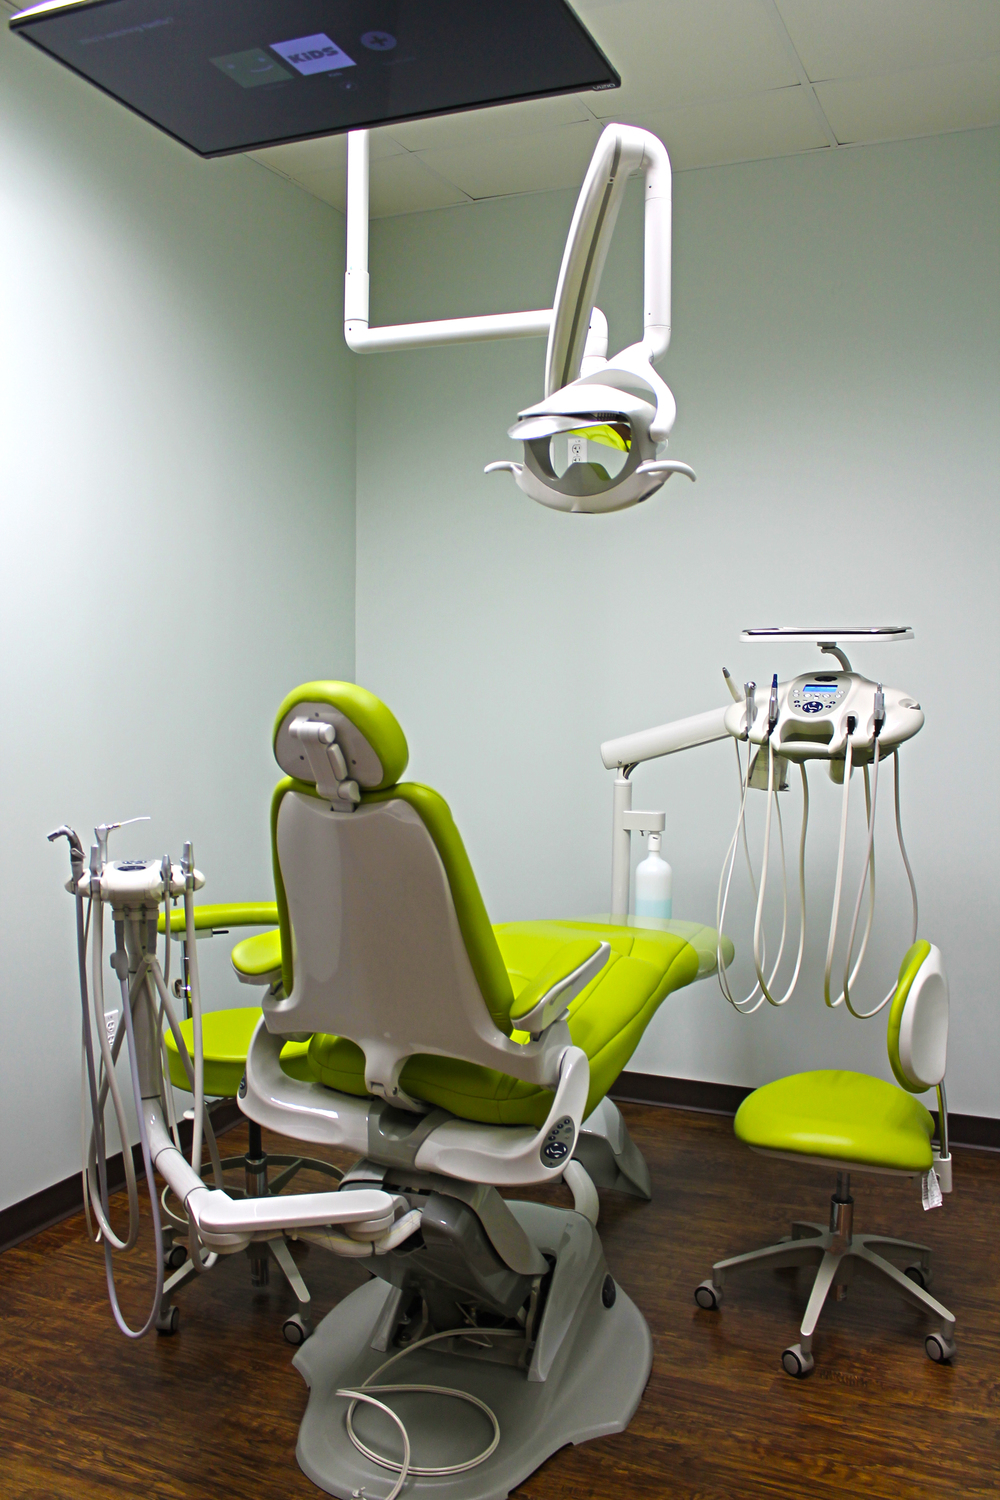 Operatory with ceiling mounted TV's with Netflix and chair massage